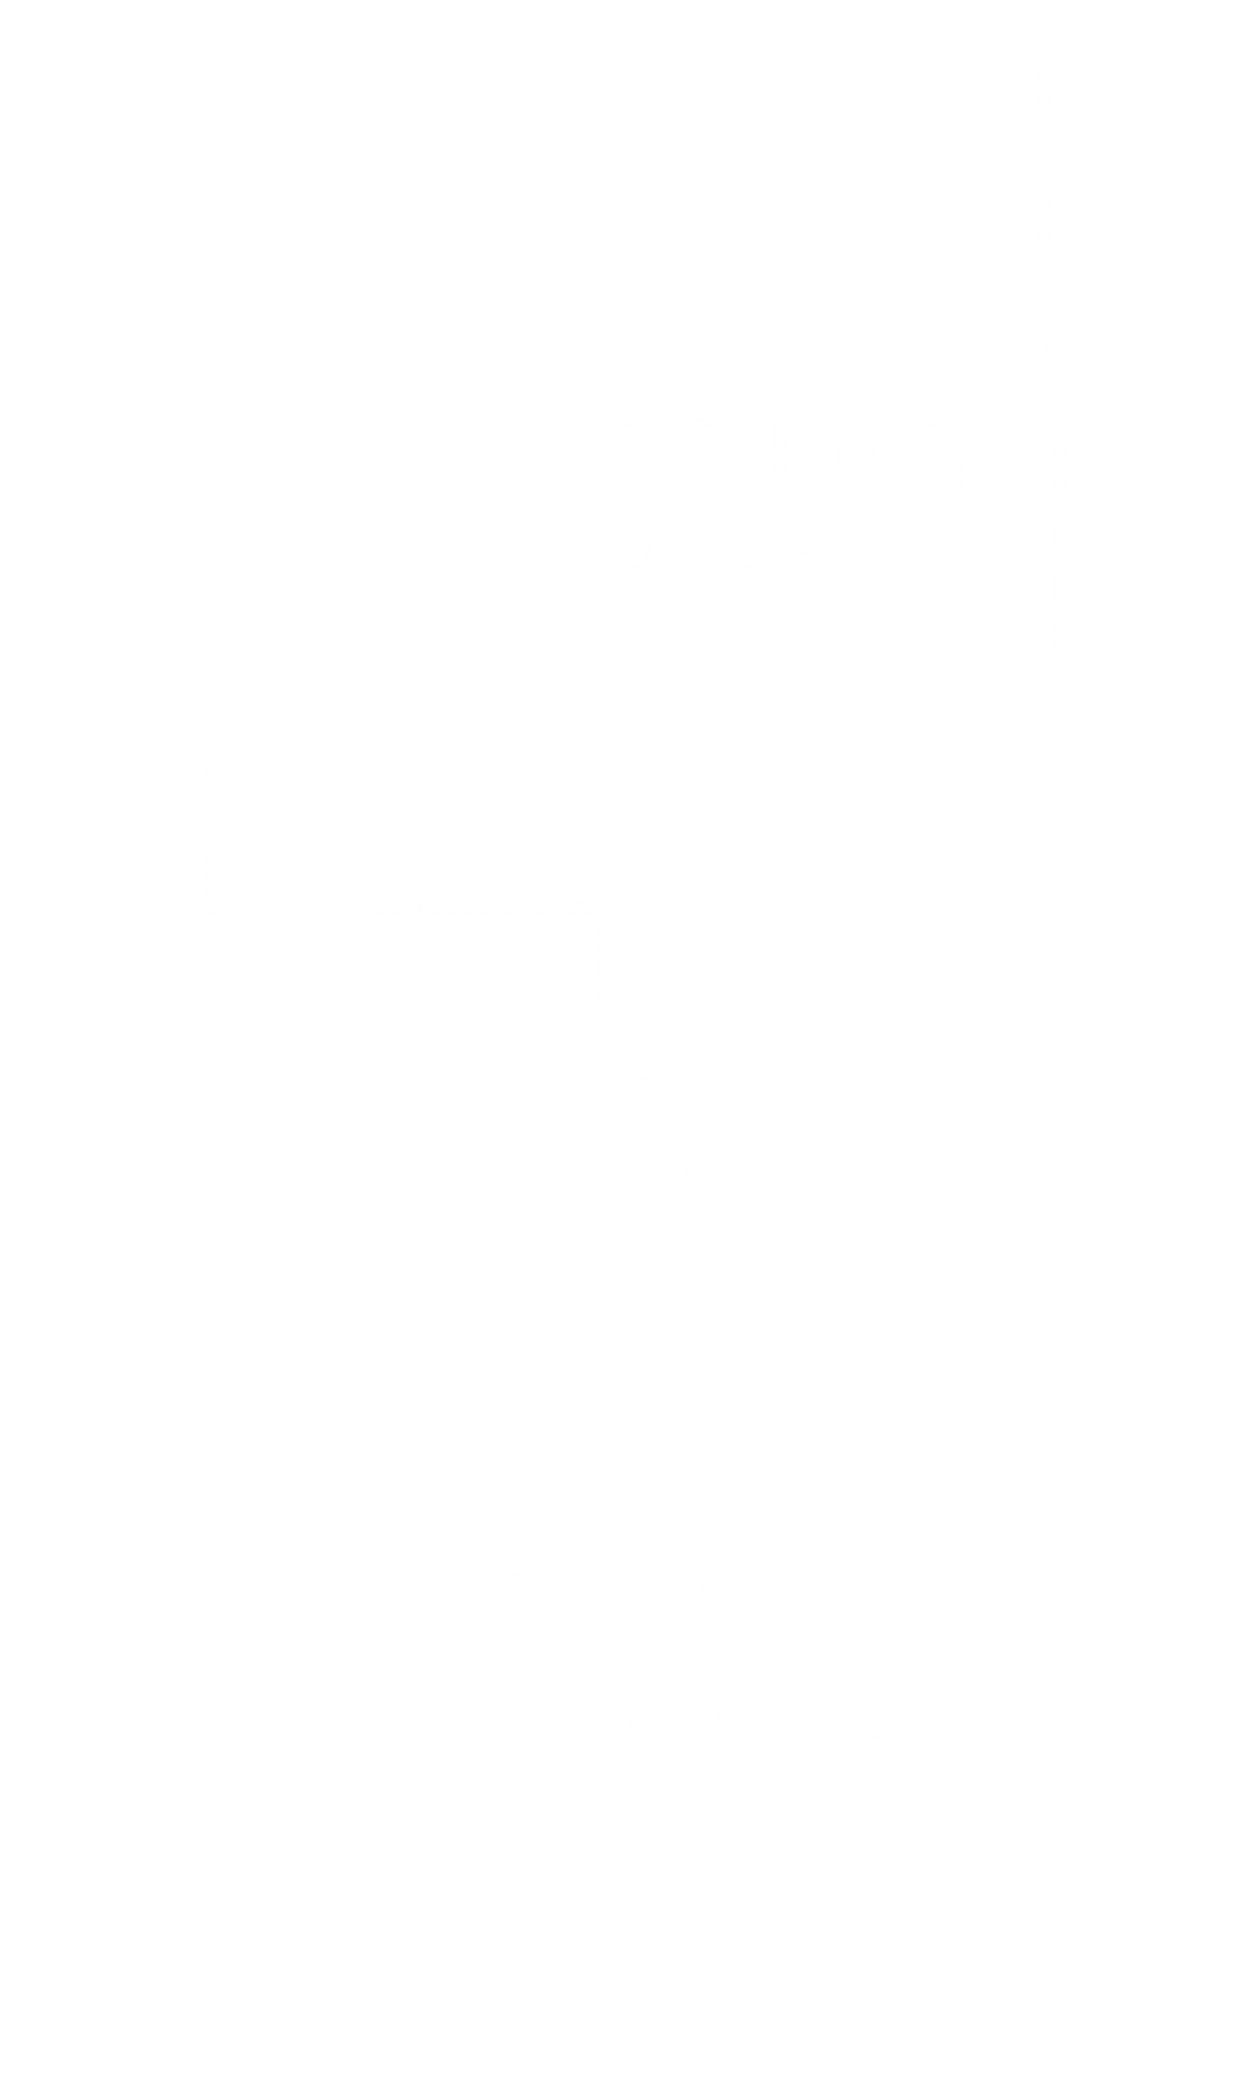 Square Leg Records